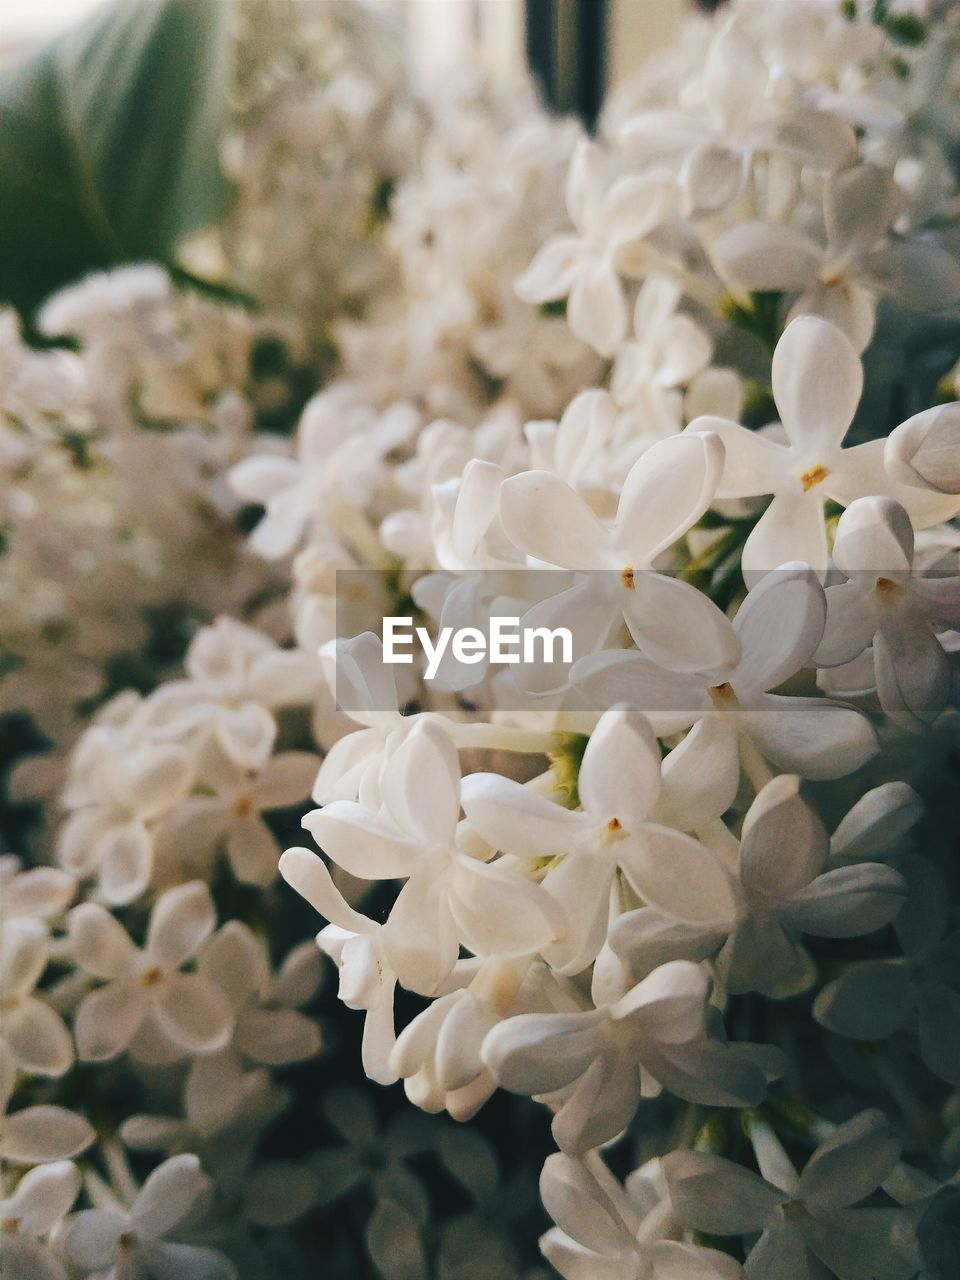 flower, white color, petal, beauty in nature, nature, freshness, focus on foreground, flower head, close-up, no people, fragility, plant, indoors, day, growth